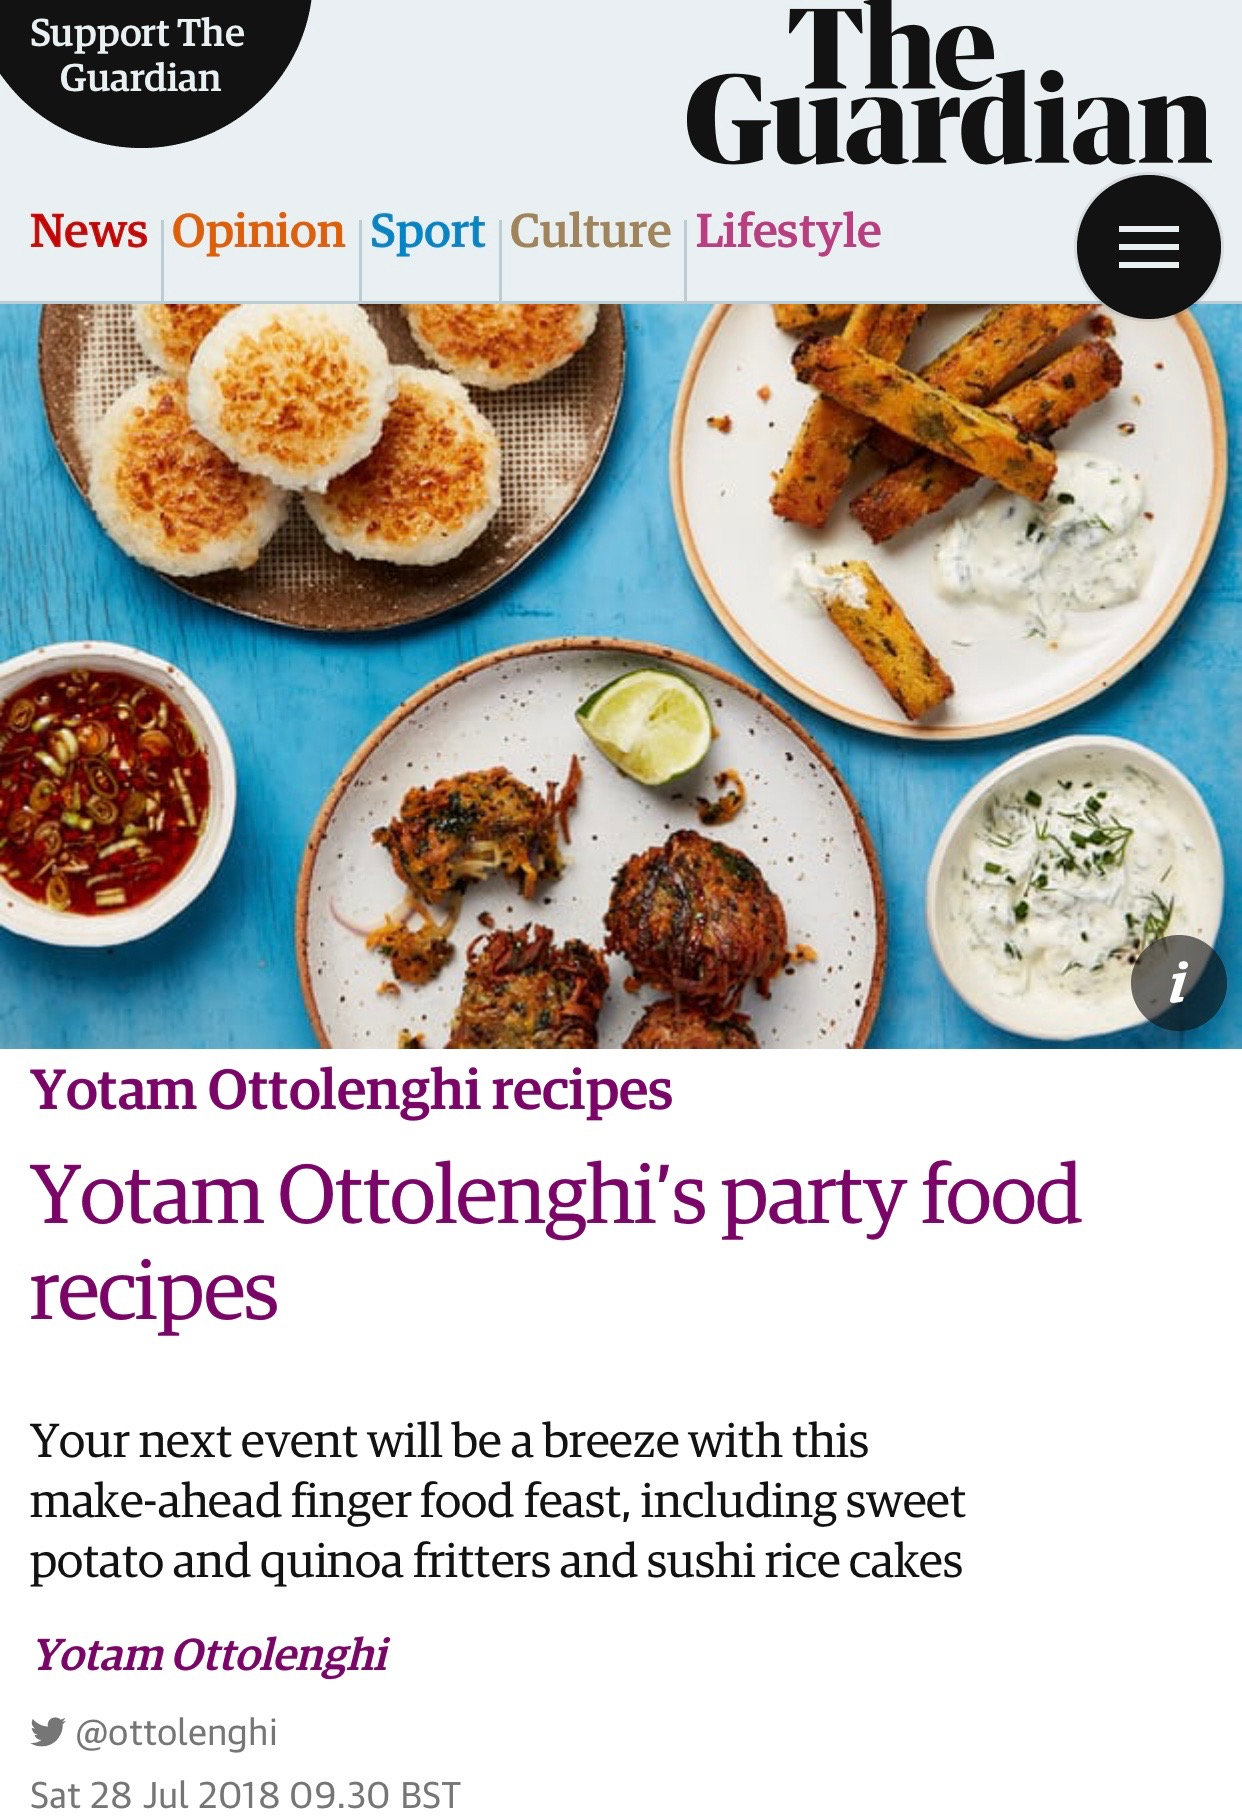 The Guardian - SkandiHus wares used by Yotam Ottolenghi - July 2018